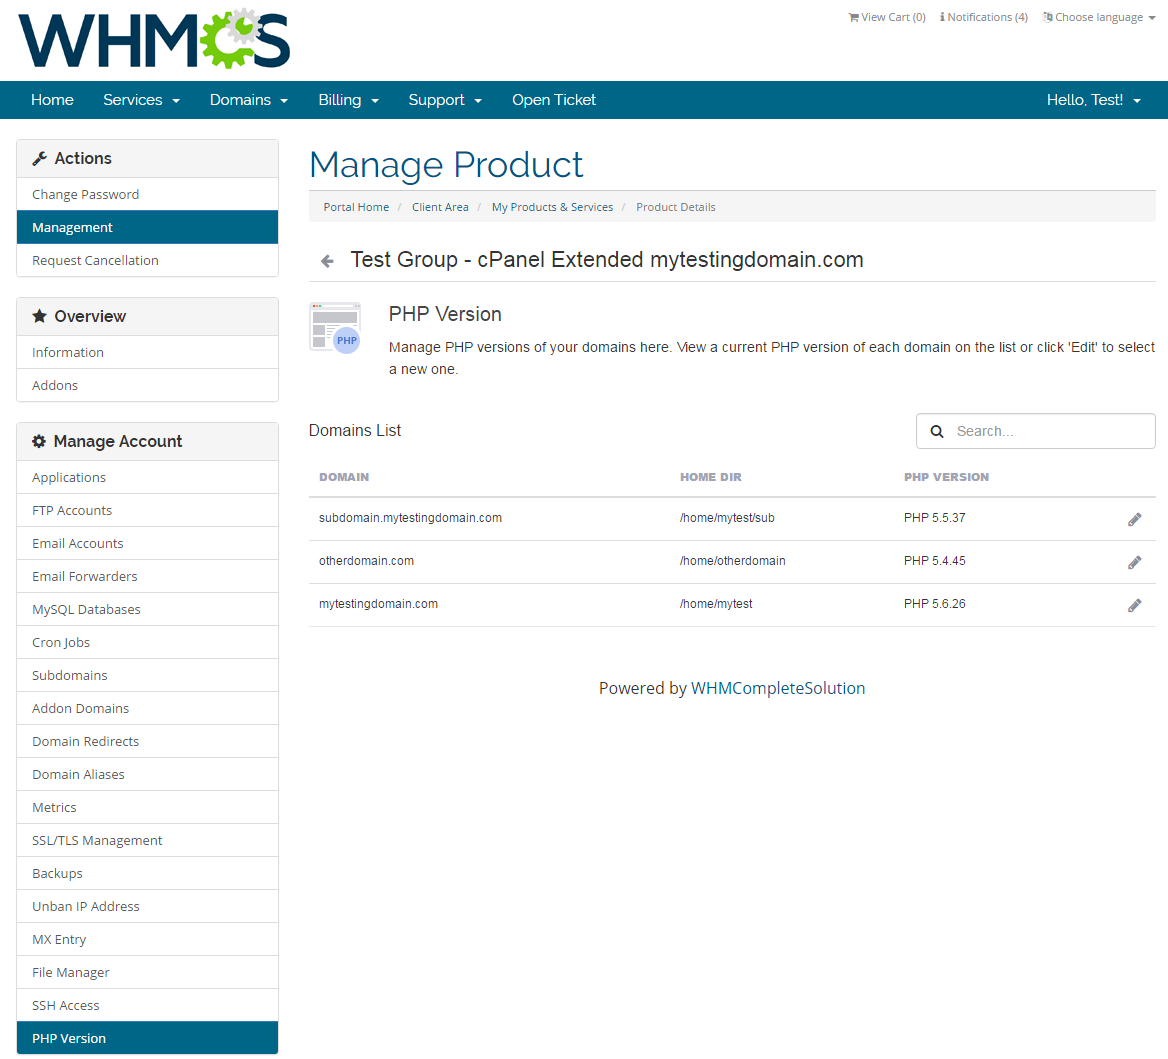 cPanel Extended For WHMCS: Screen 10